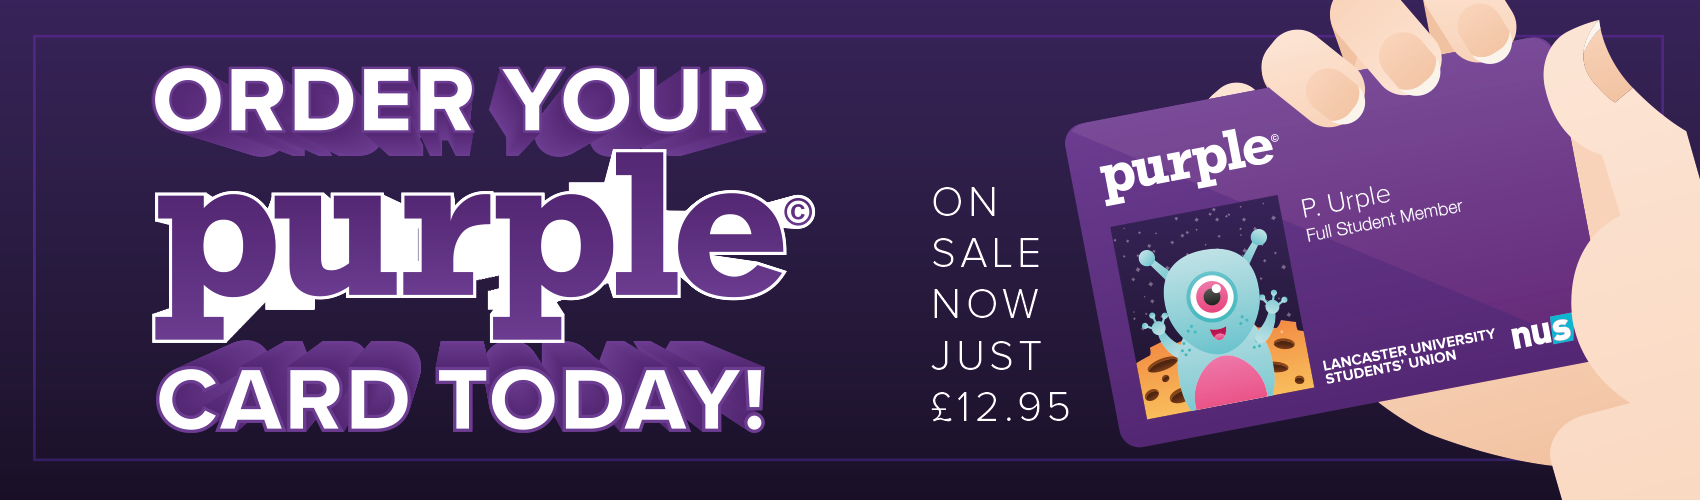 Purchase a Purple Card